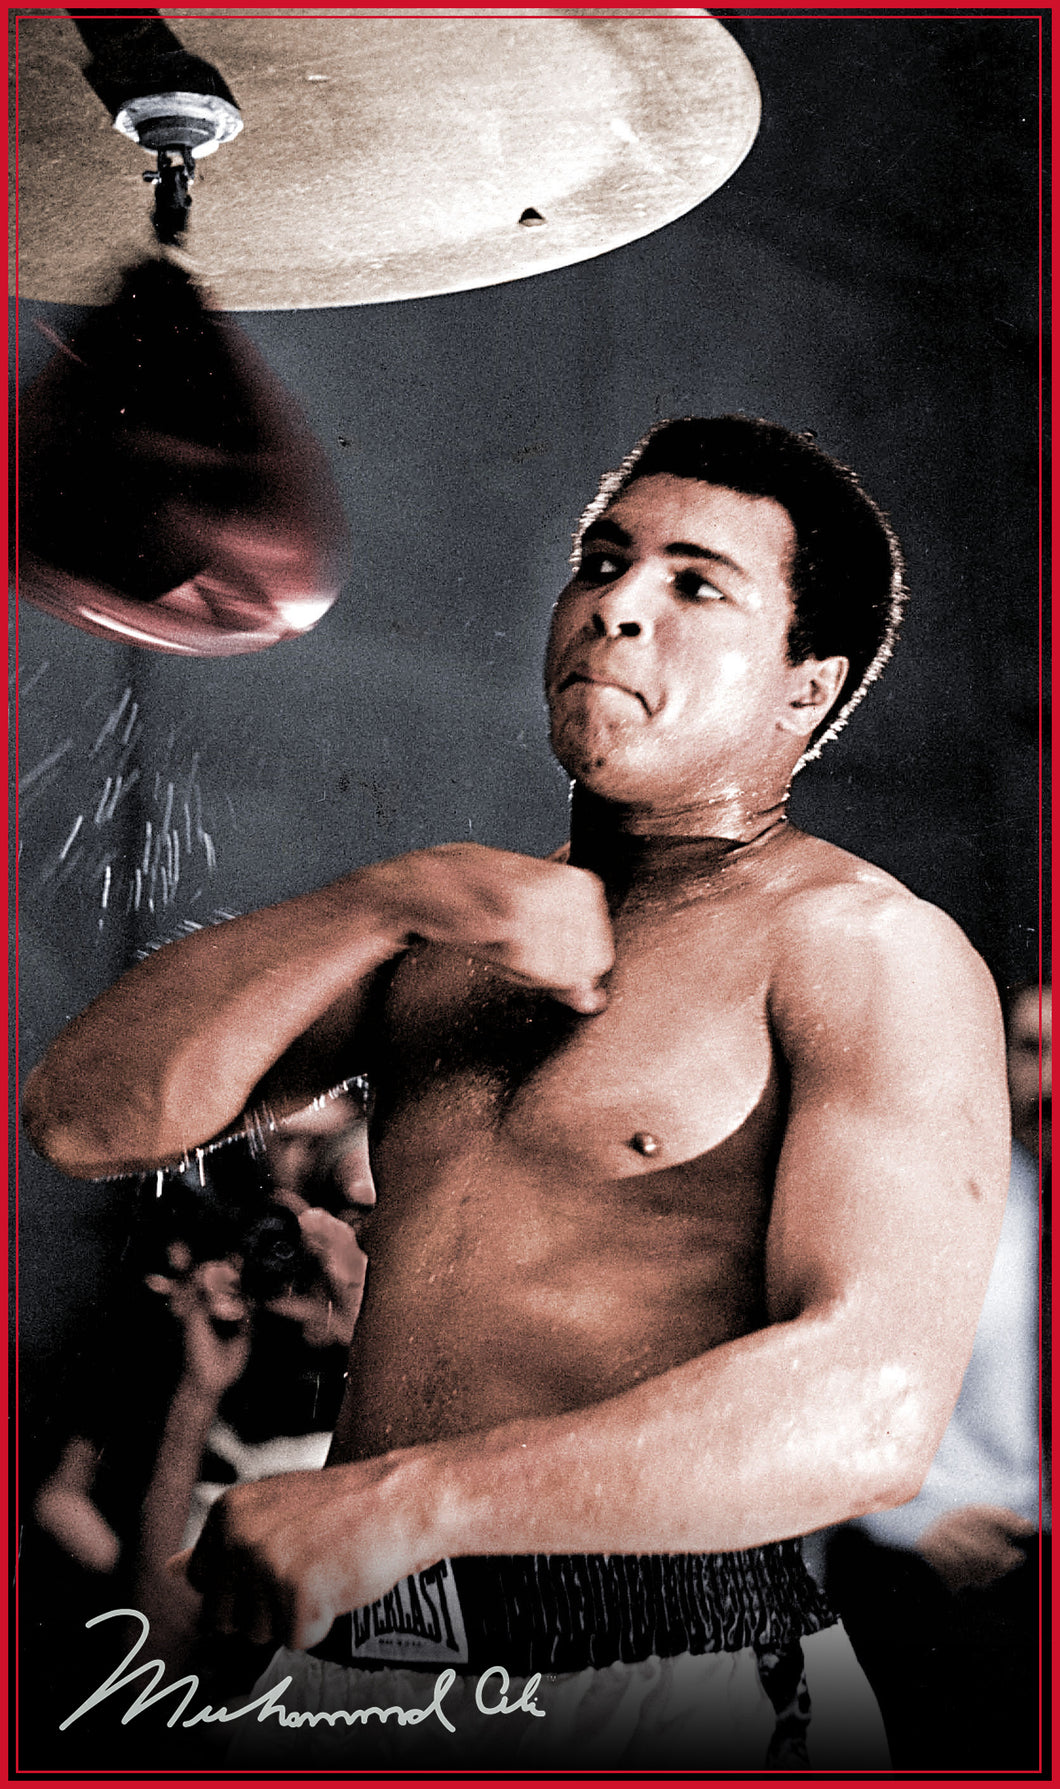 An image of Ali punching a bag with his signature in the bottom corner.